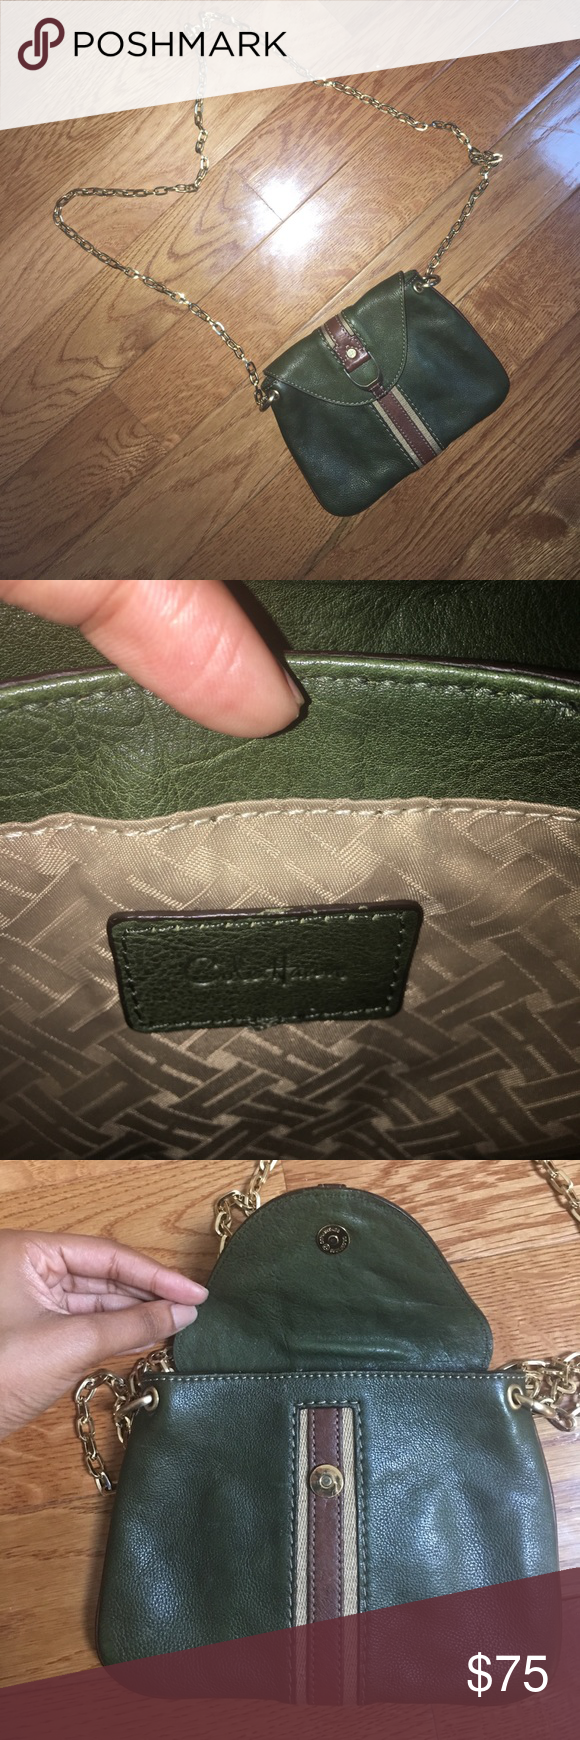 Cole Haan leather crossbody bag Authentic, used a few times, purchased at Cole Haan, Cole Haan Bags Crossbody Bags